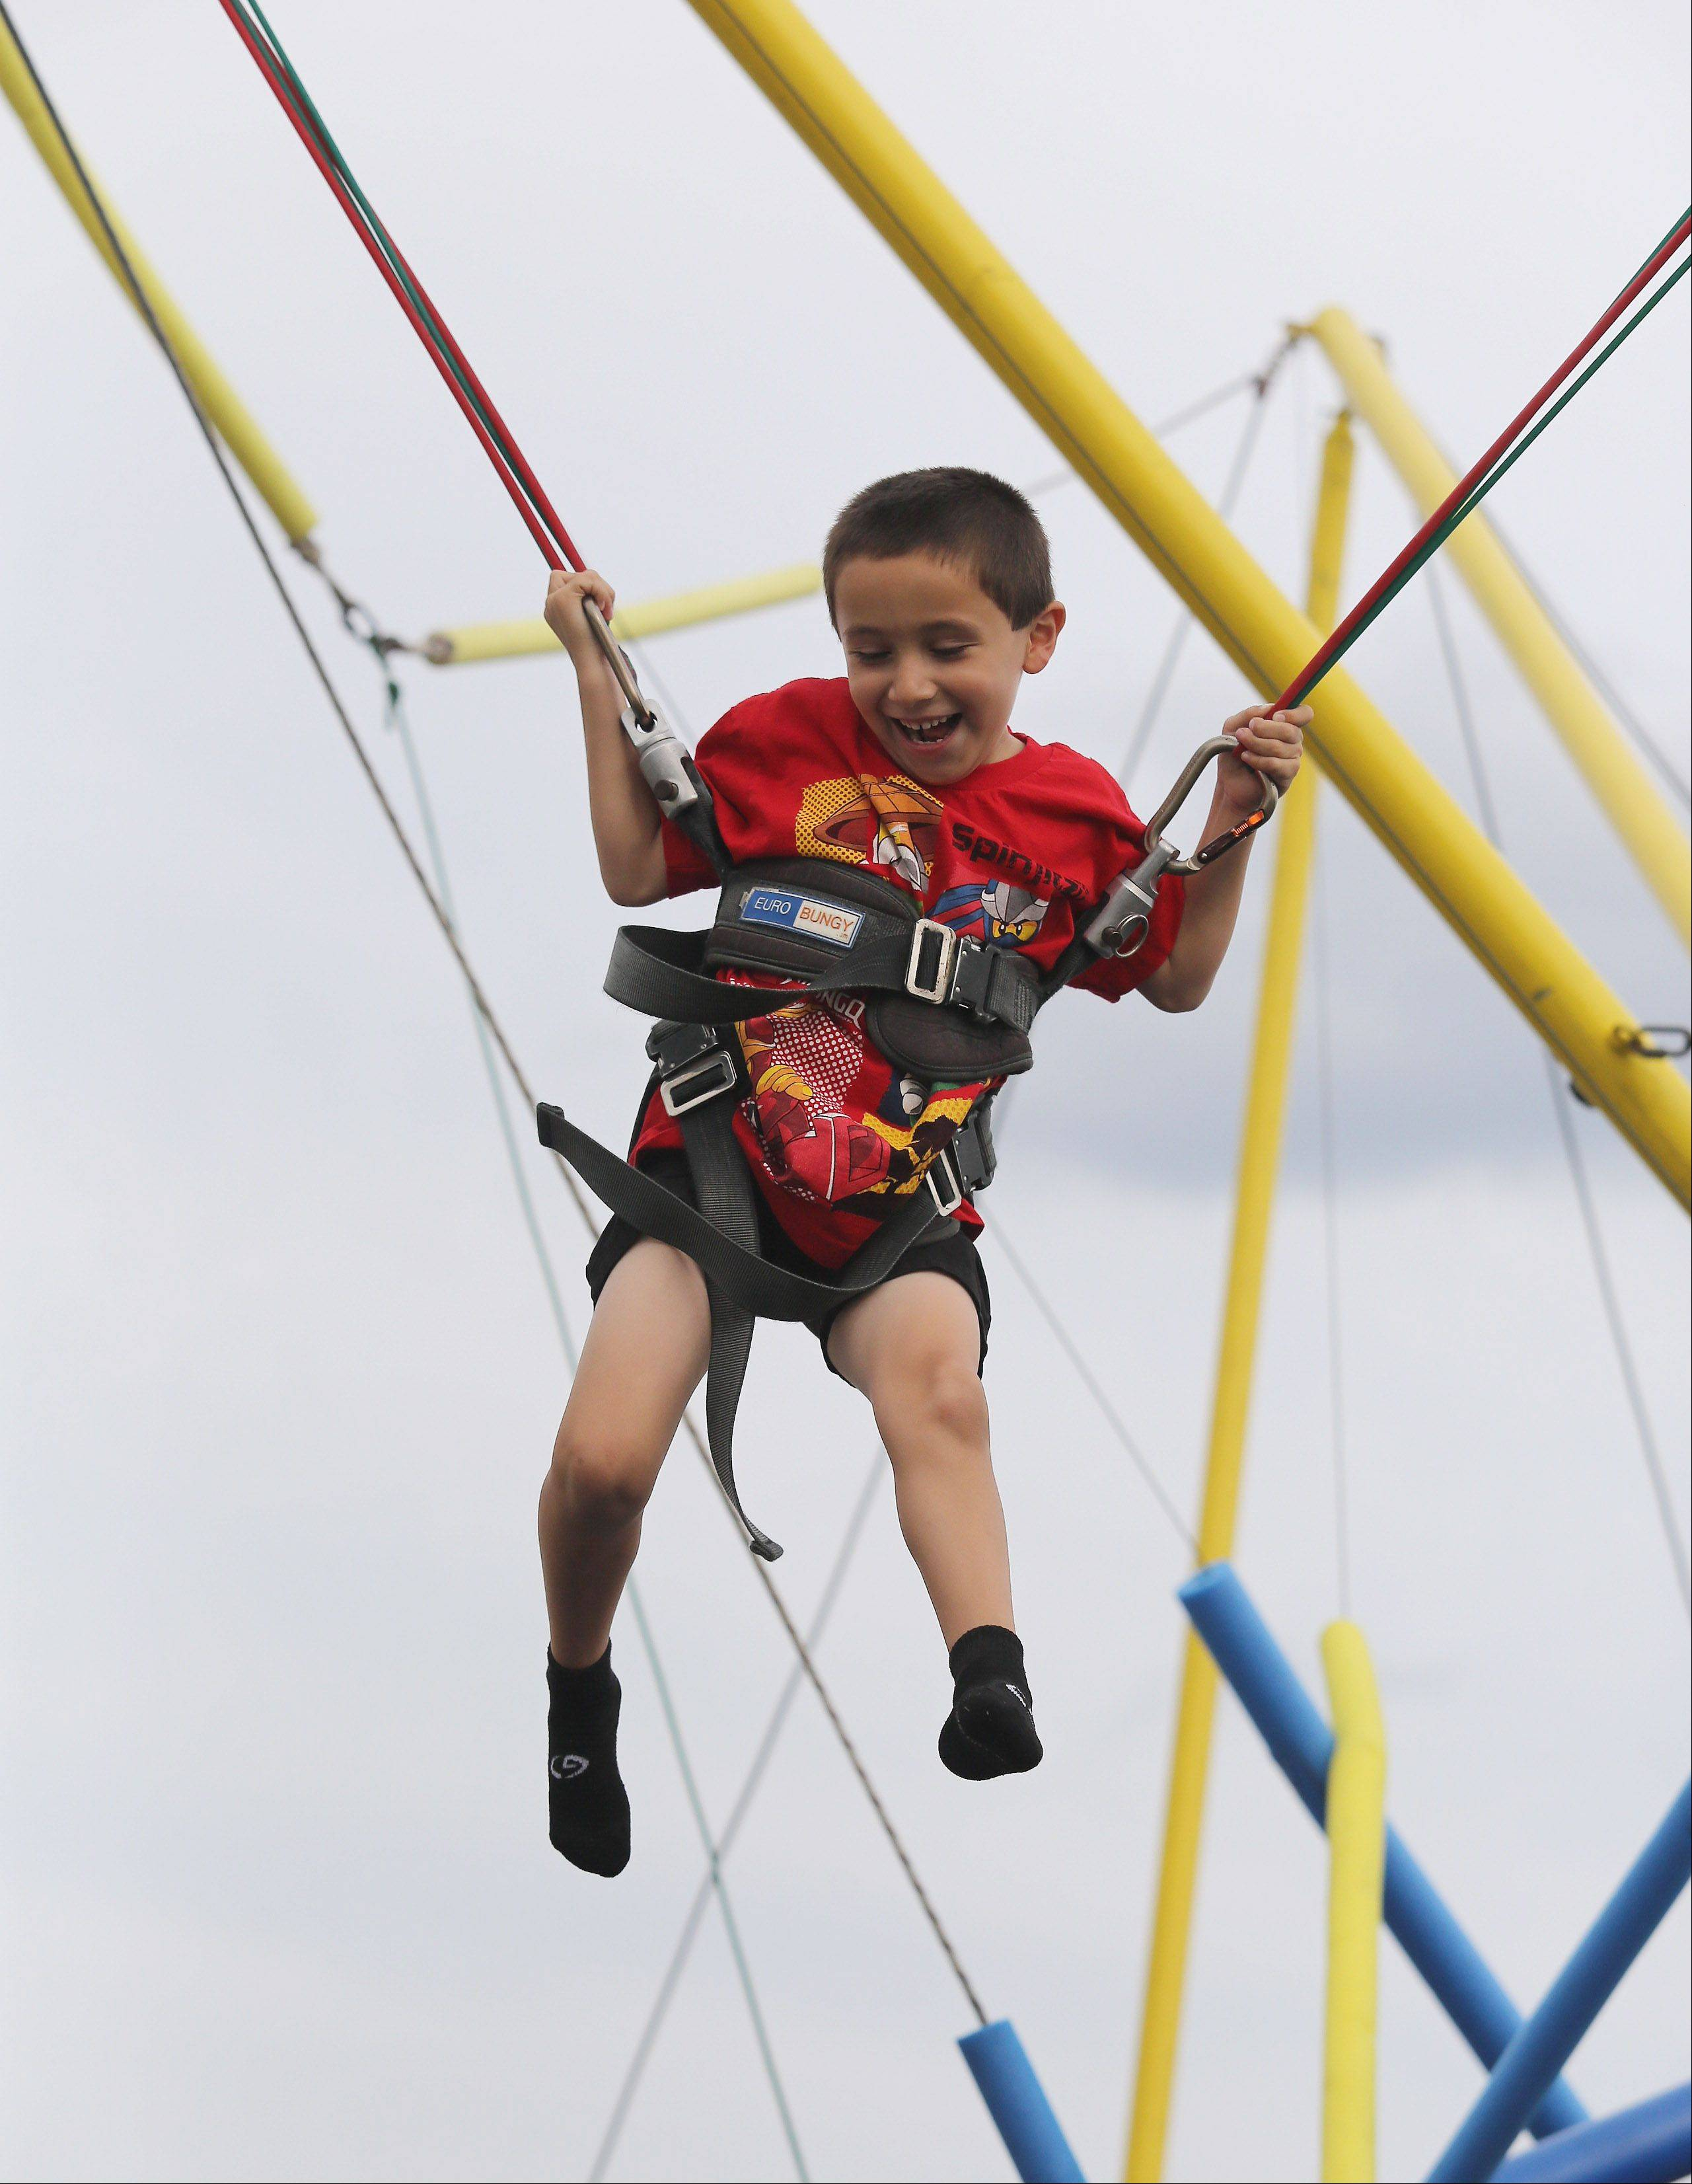 Jacob Eichenbaum, 5, of Vernon Hills plays on the Quad Power Jump during the Lake County Fair Thursday at the Lake County Fairgrounds in Grayslake.